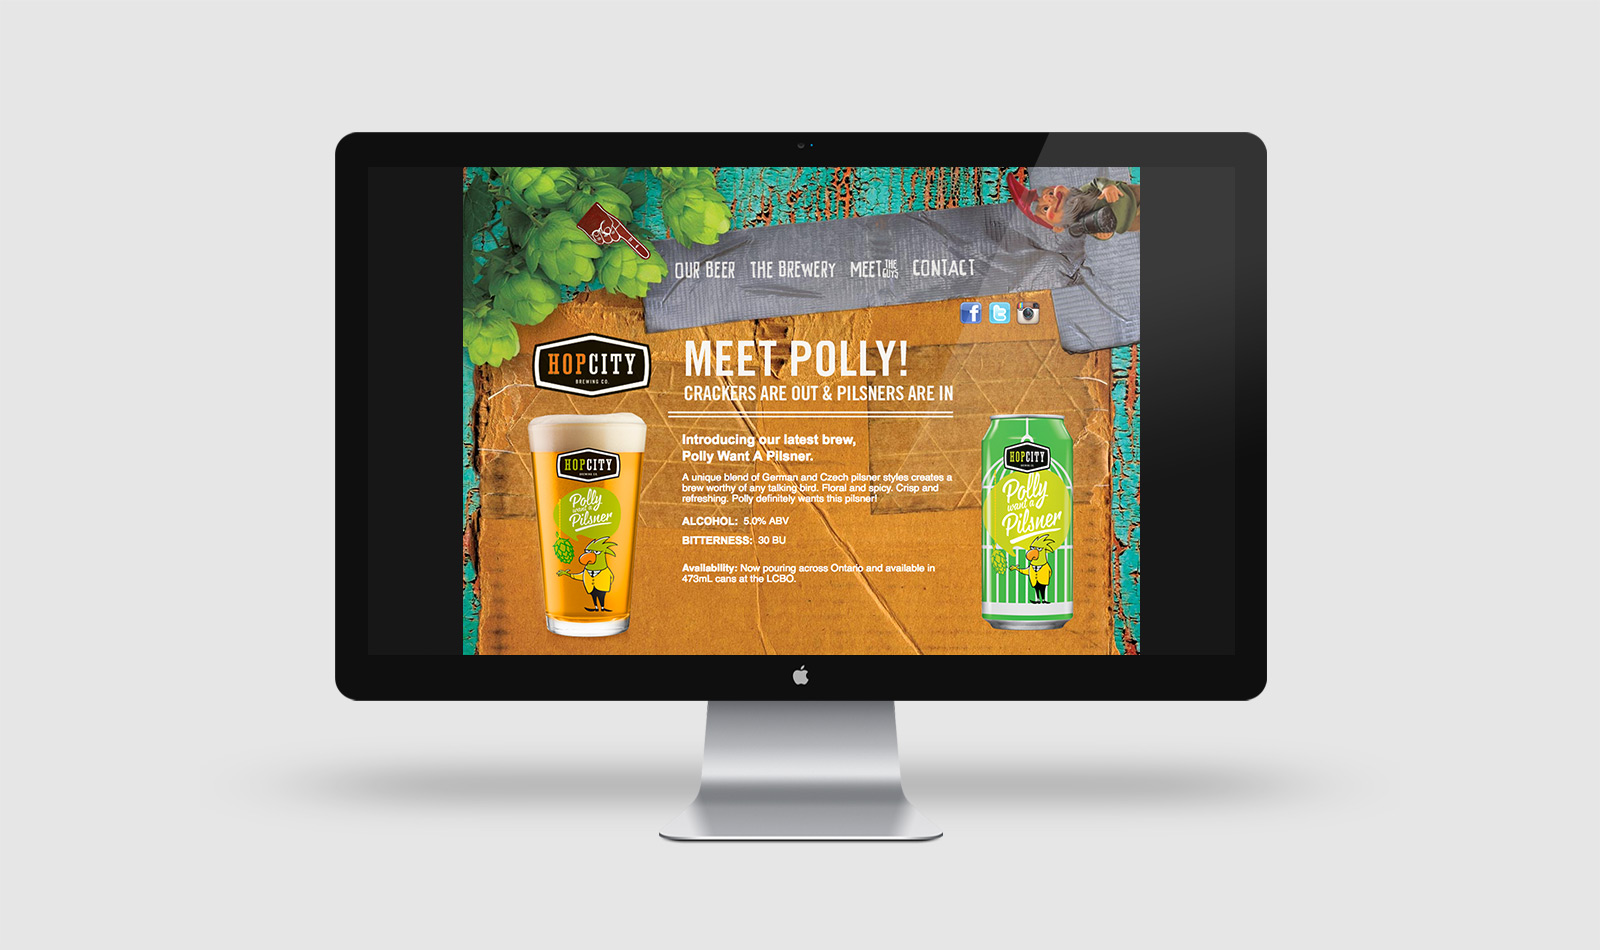 Hop City - Web Site